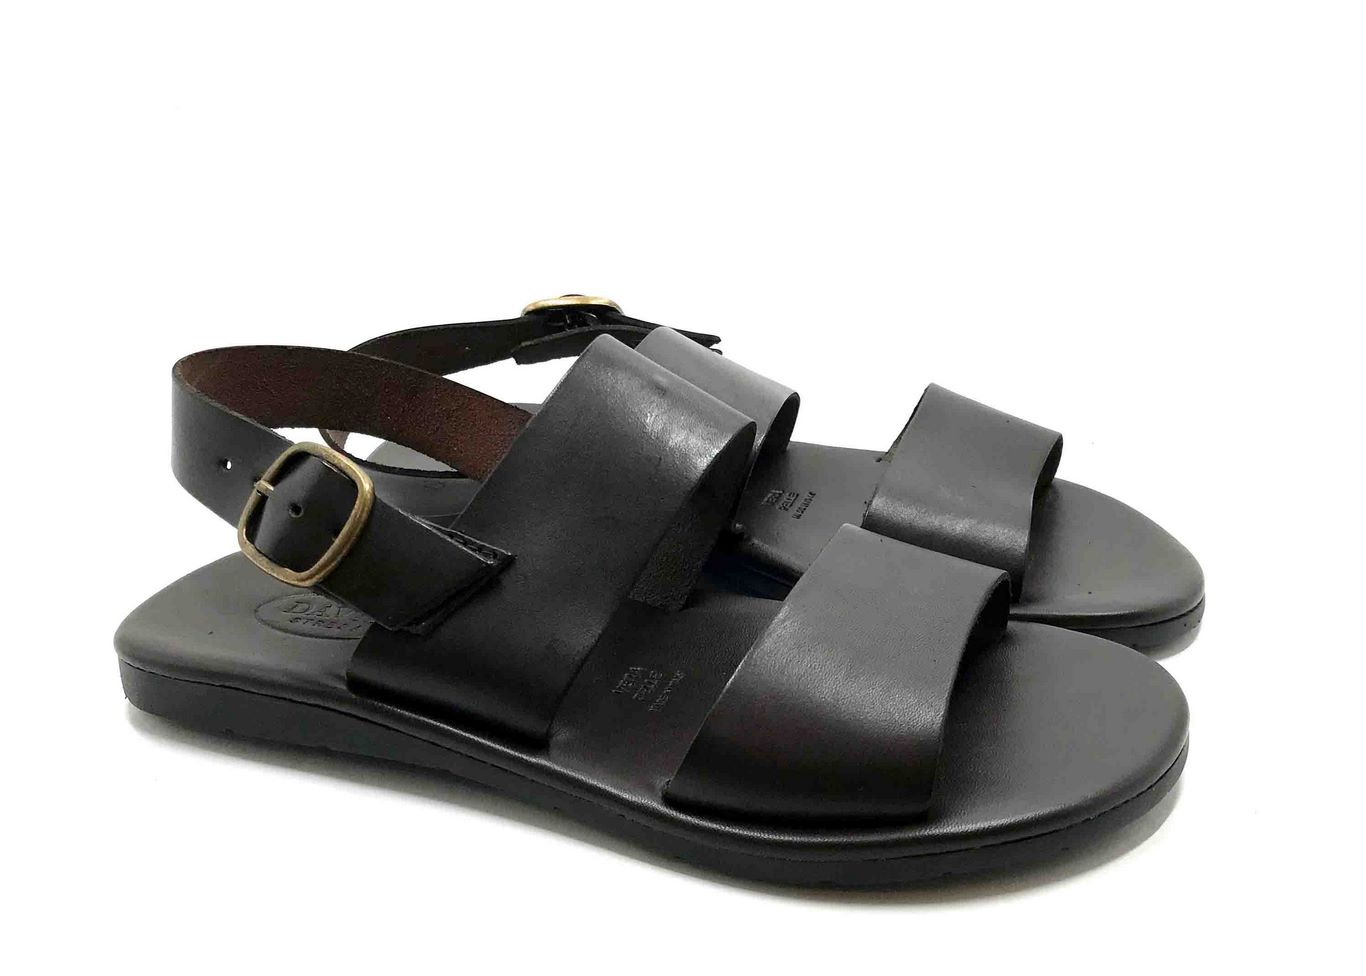 Padded sole Sandals in Brown cowhide leather